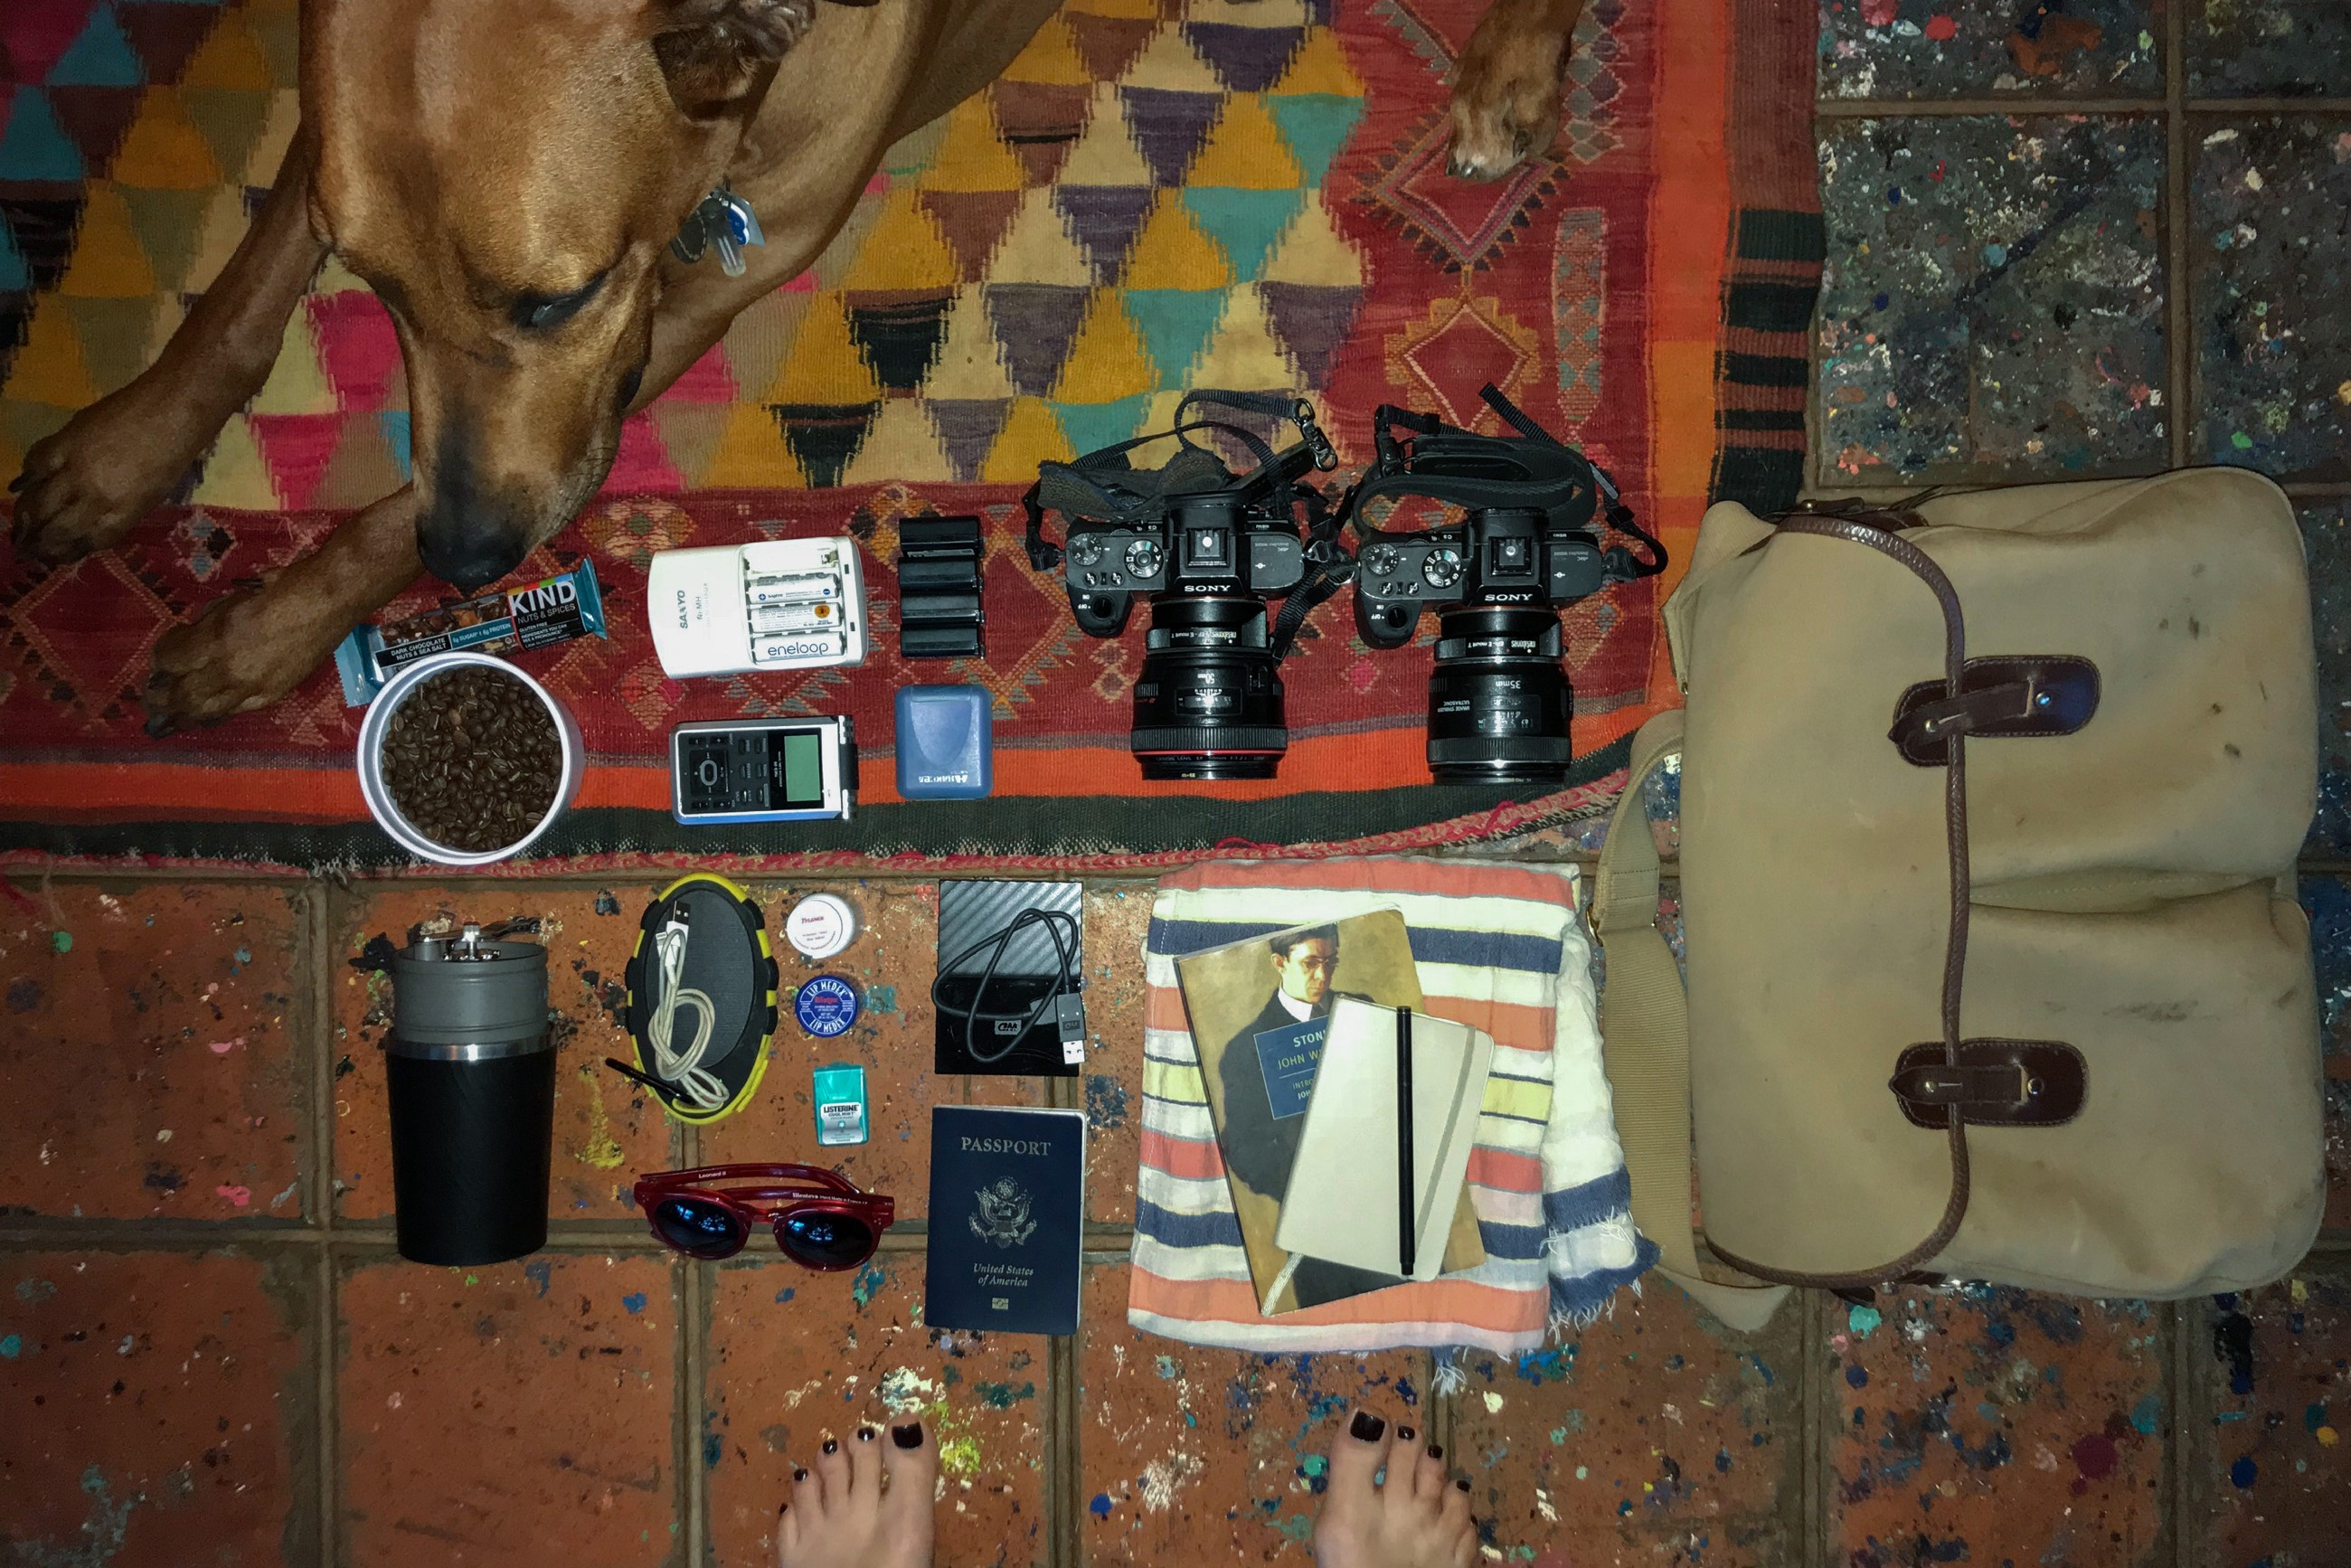 c02b355c5a What s in your bag  VII photographers show us their gear